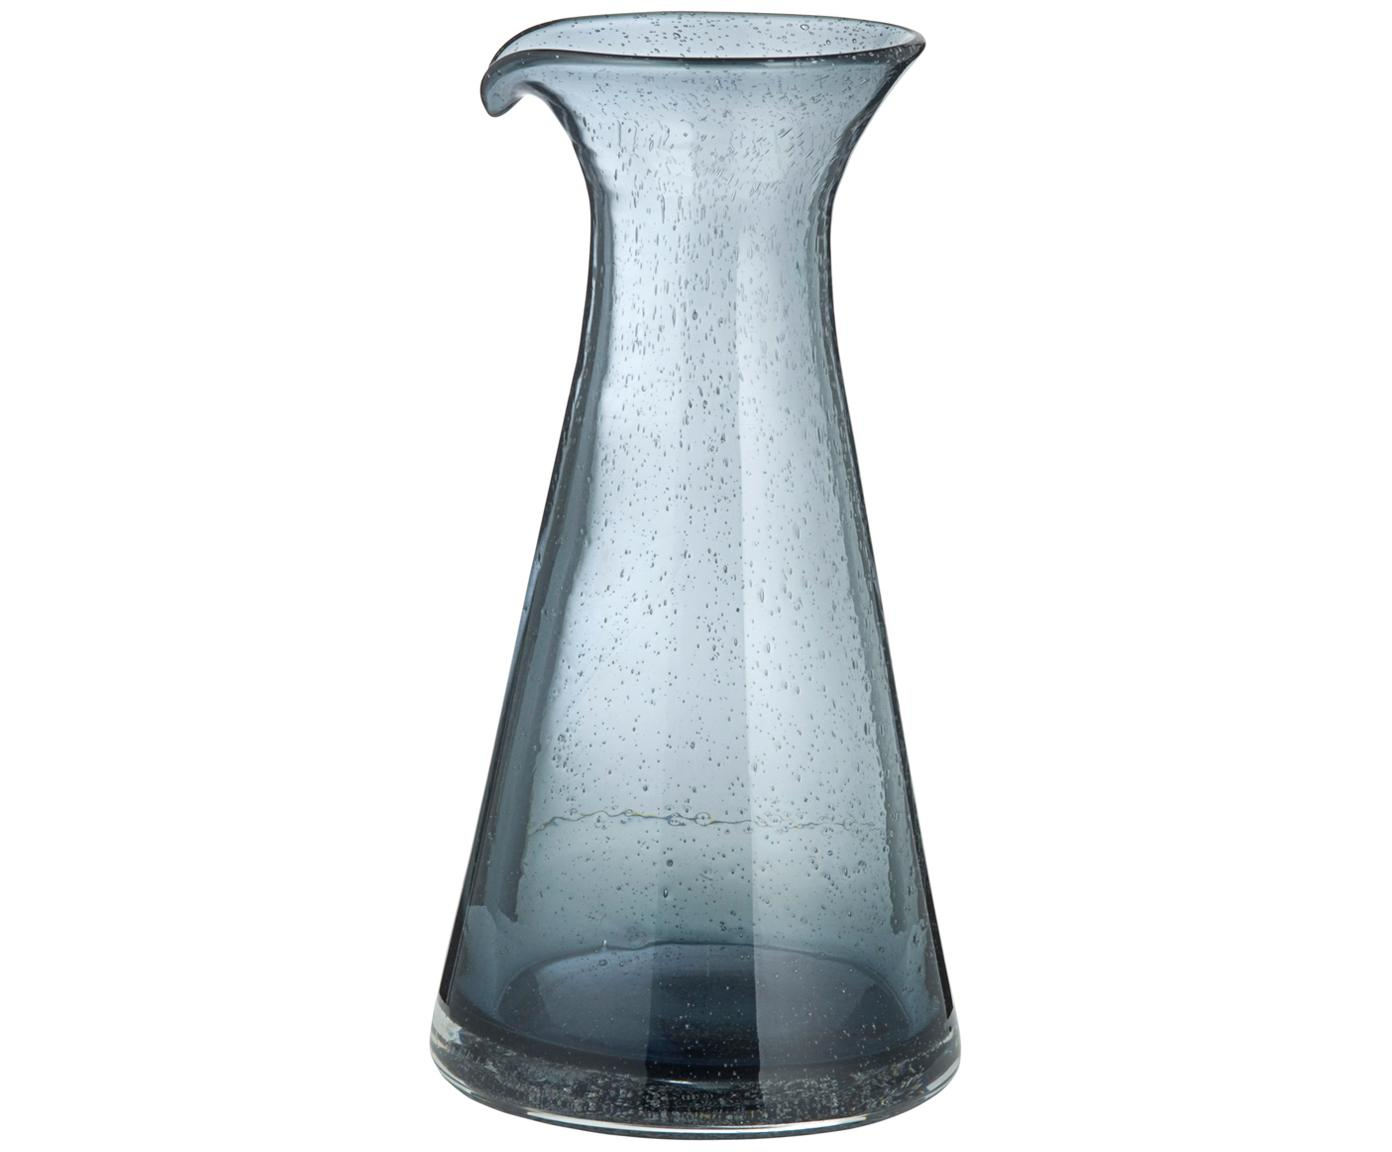 Mundgeblasene Karaffe Bubble, Glas, Transparent, Grau, 800 ml